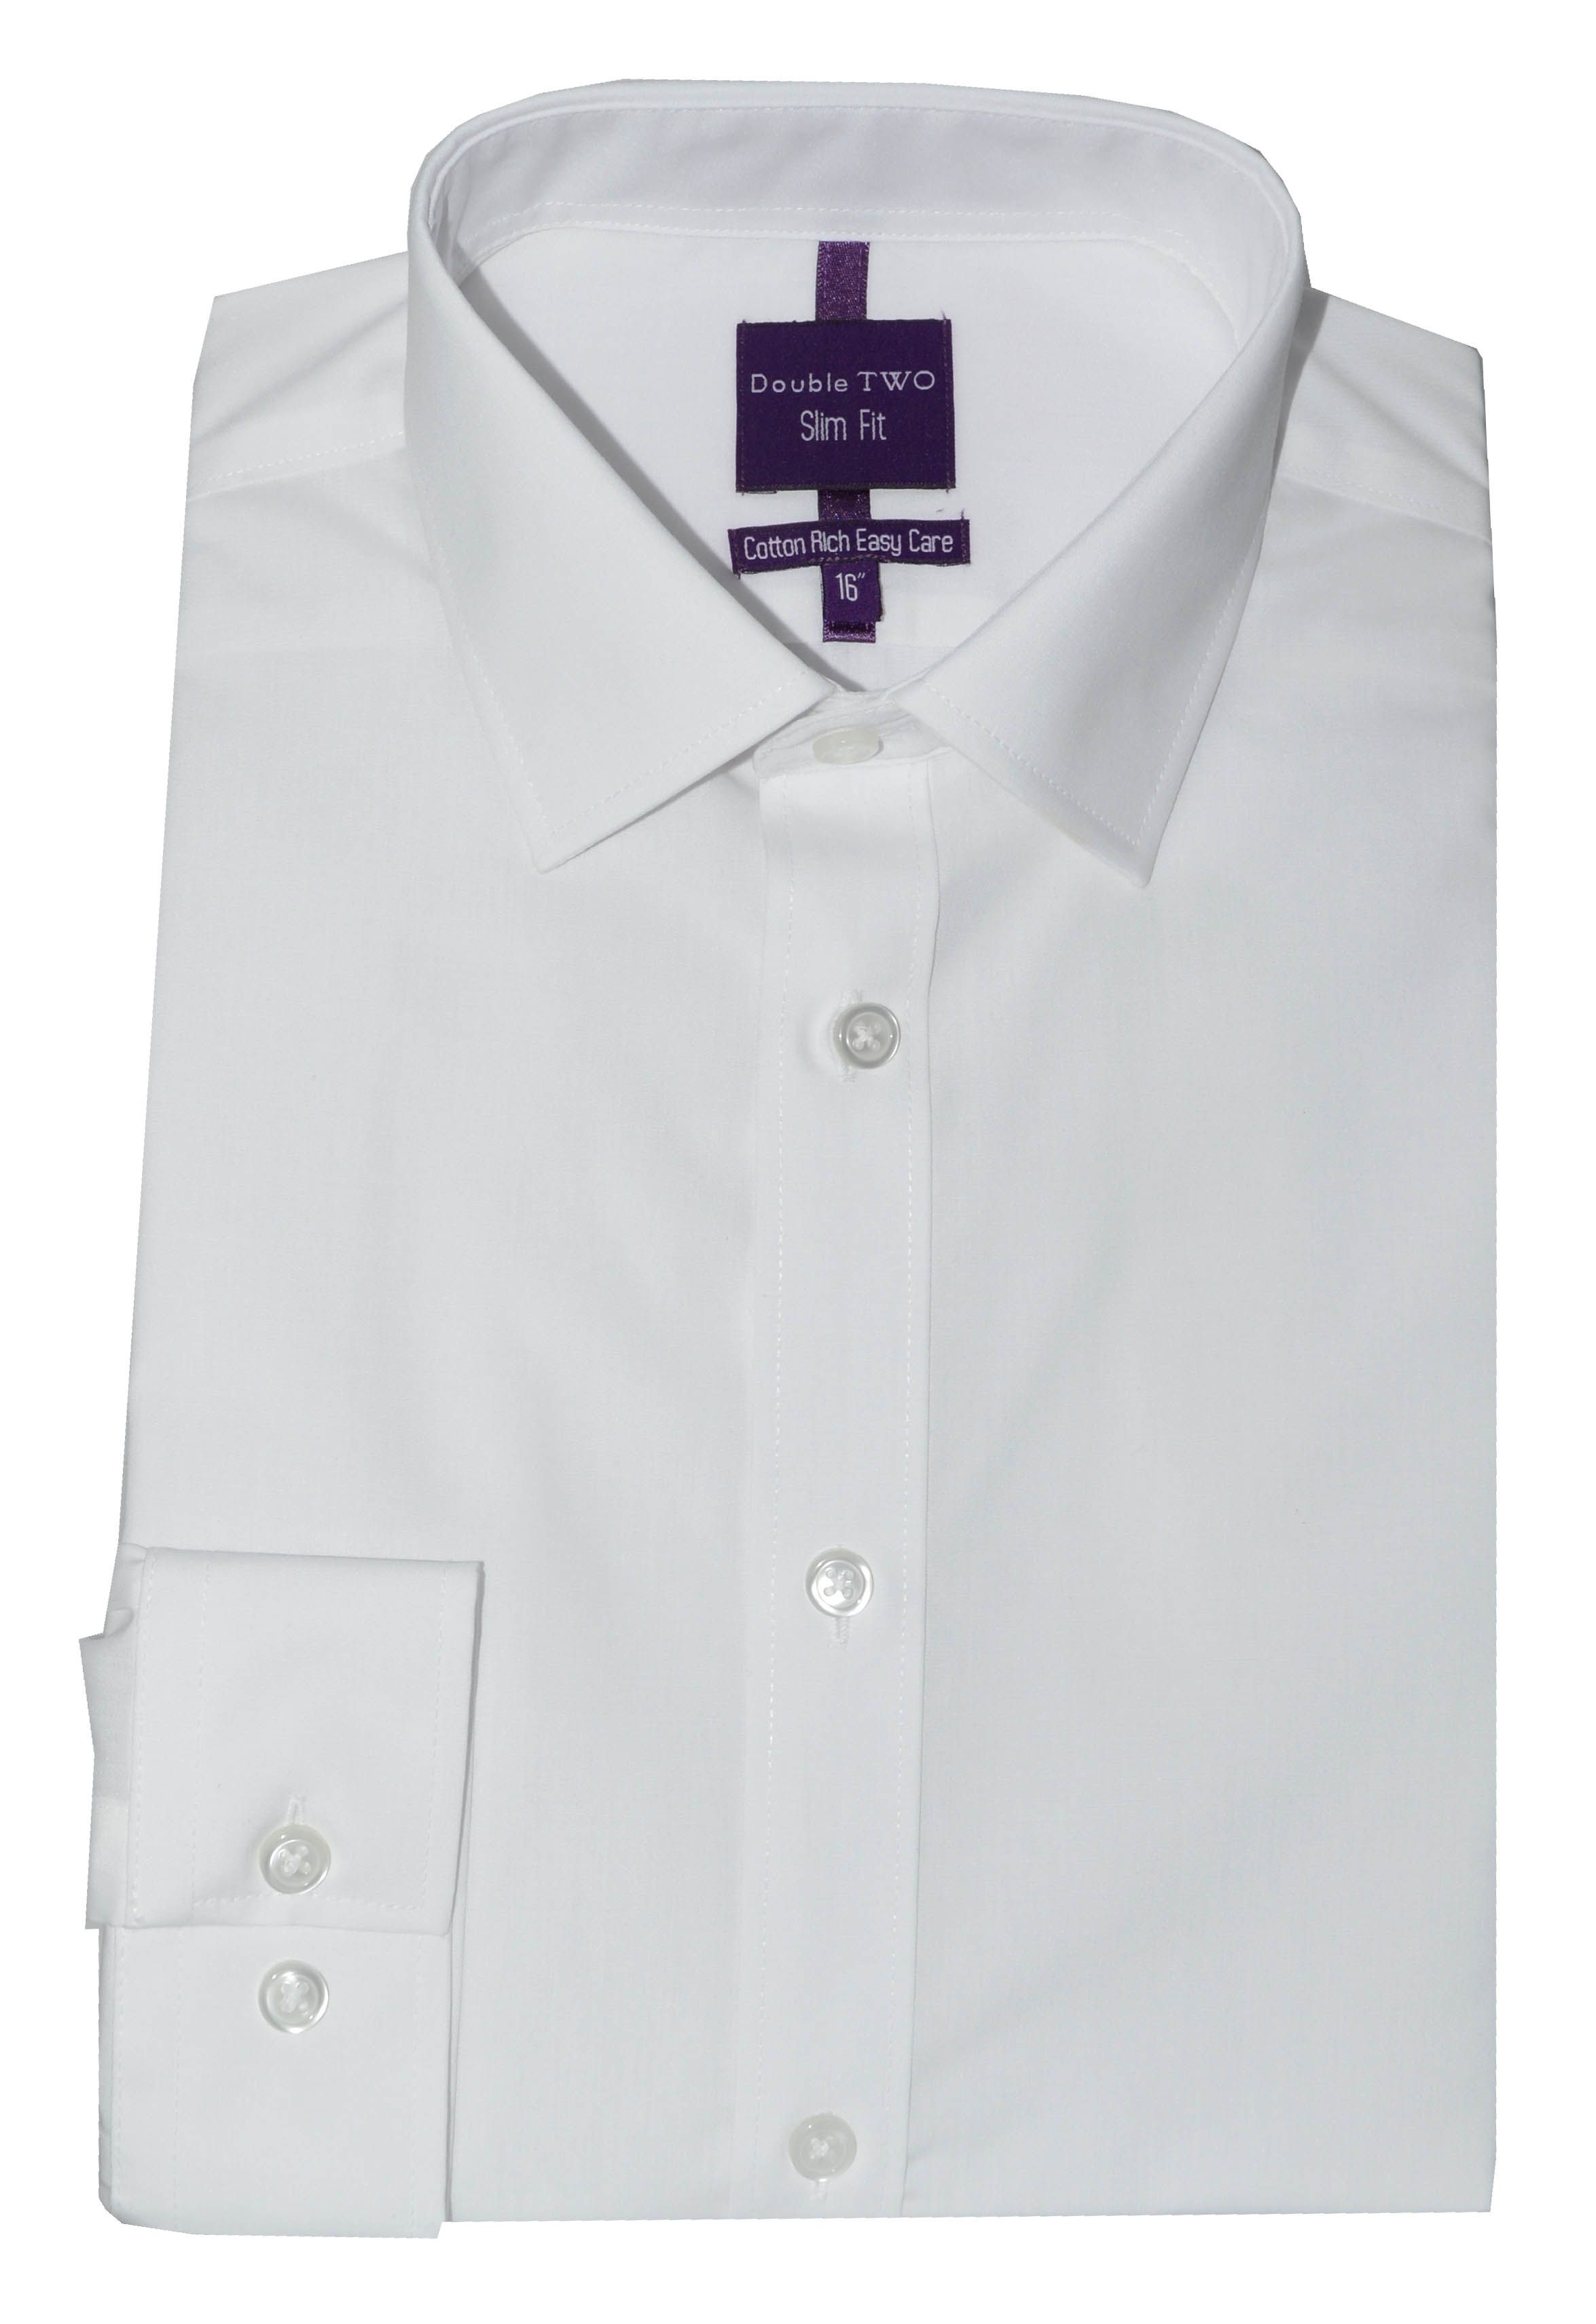 Double Two Men's Double TWO Slim Fit Formal Shirt, White